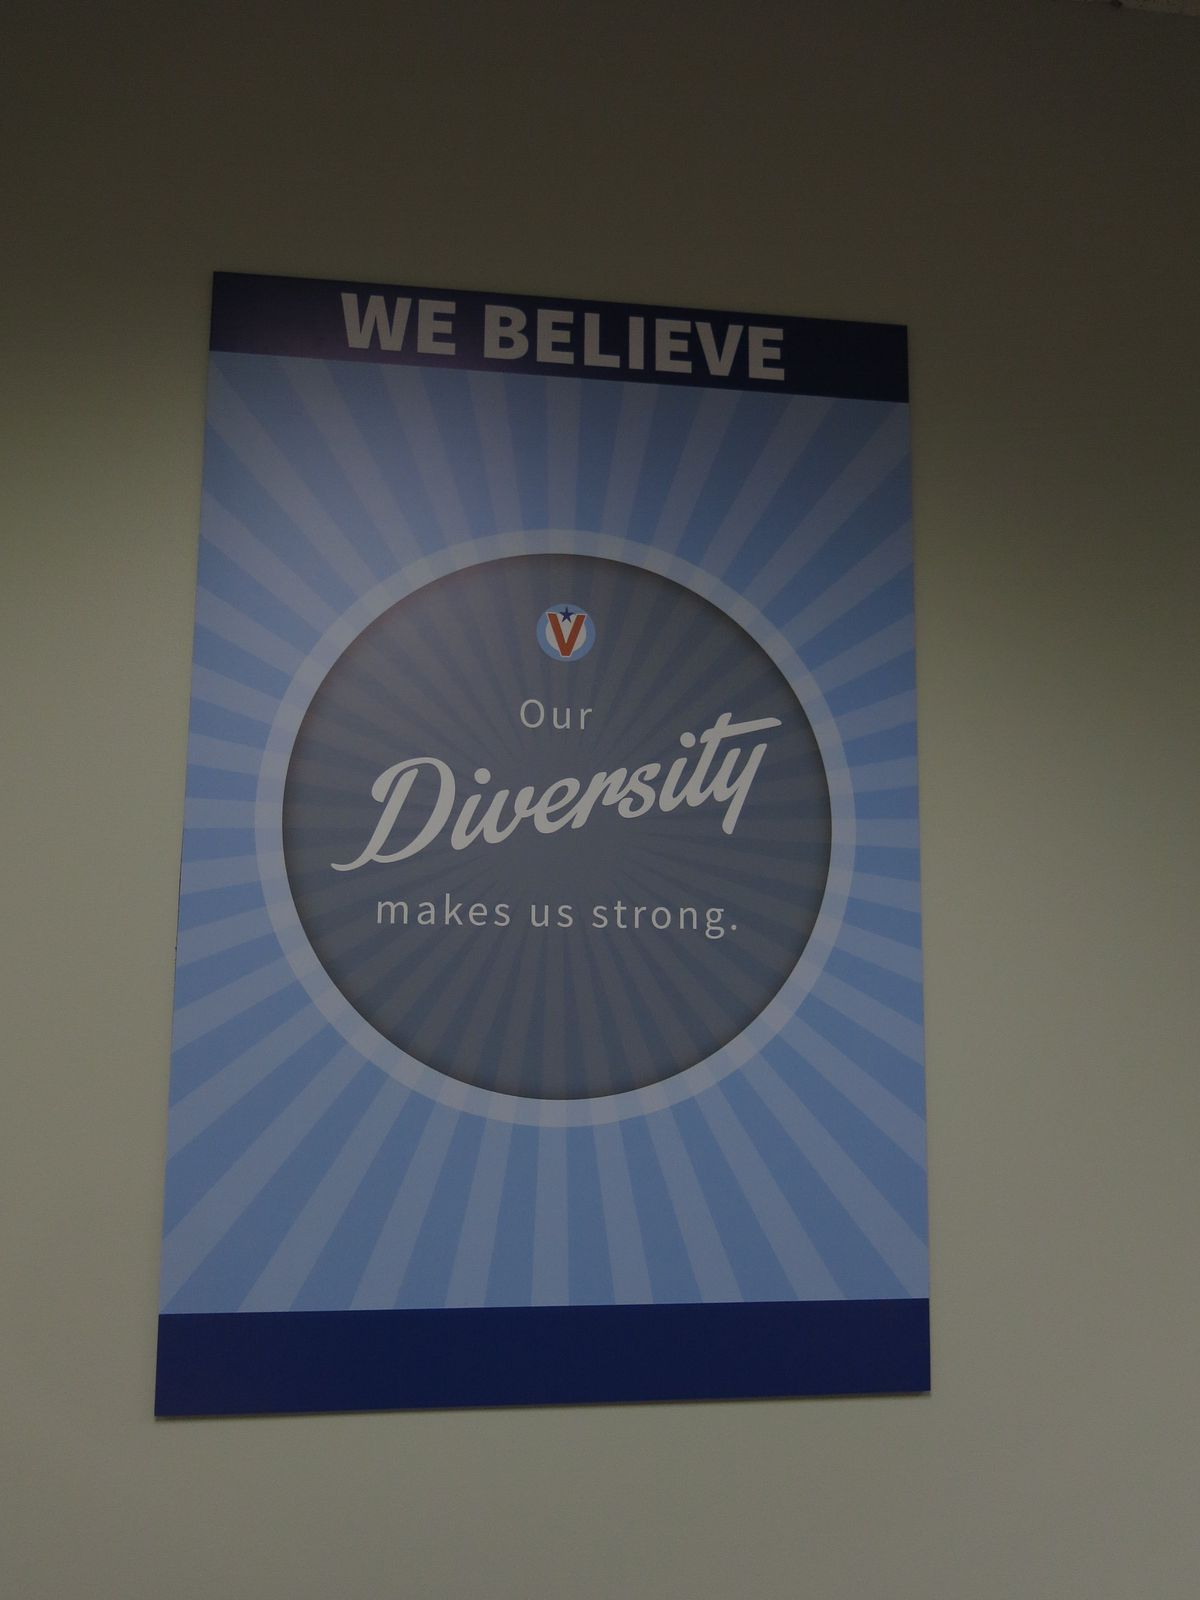 Like many charter schools, Valor is decorated with posters of the school's values.